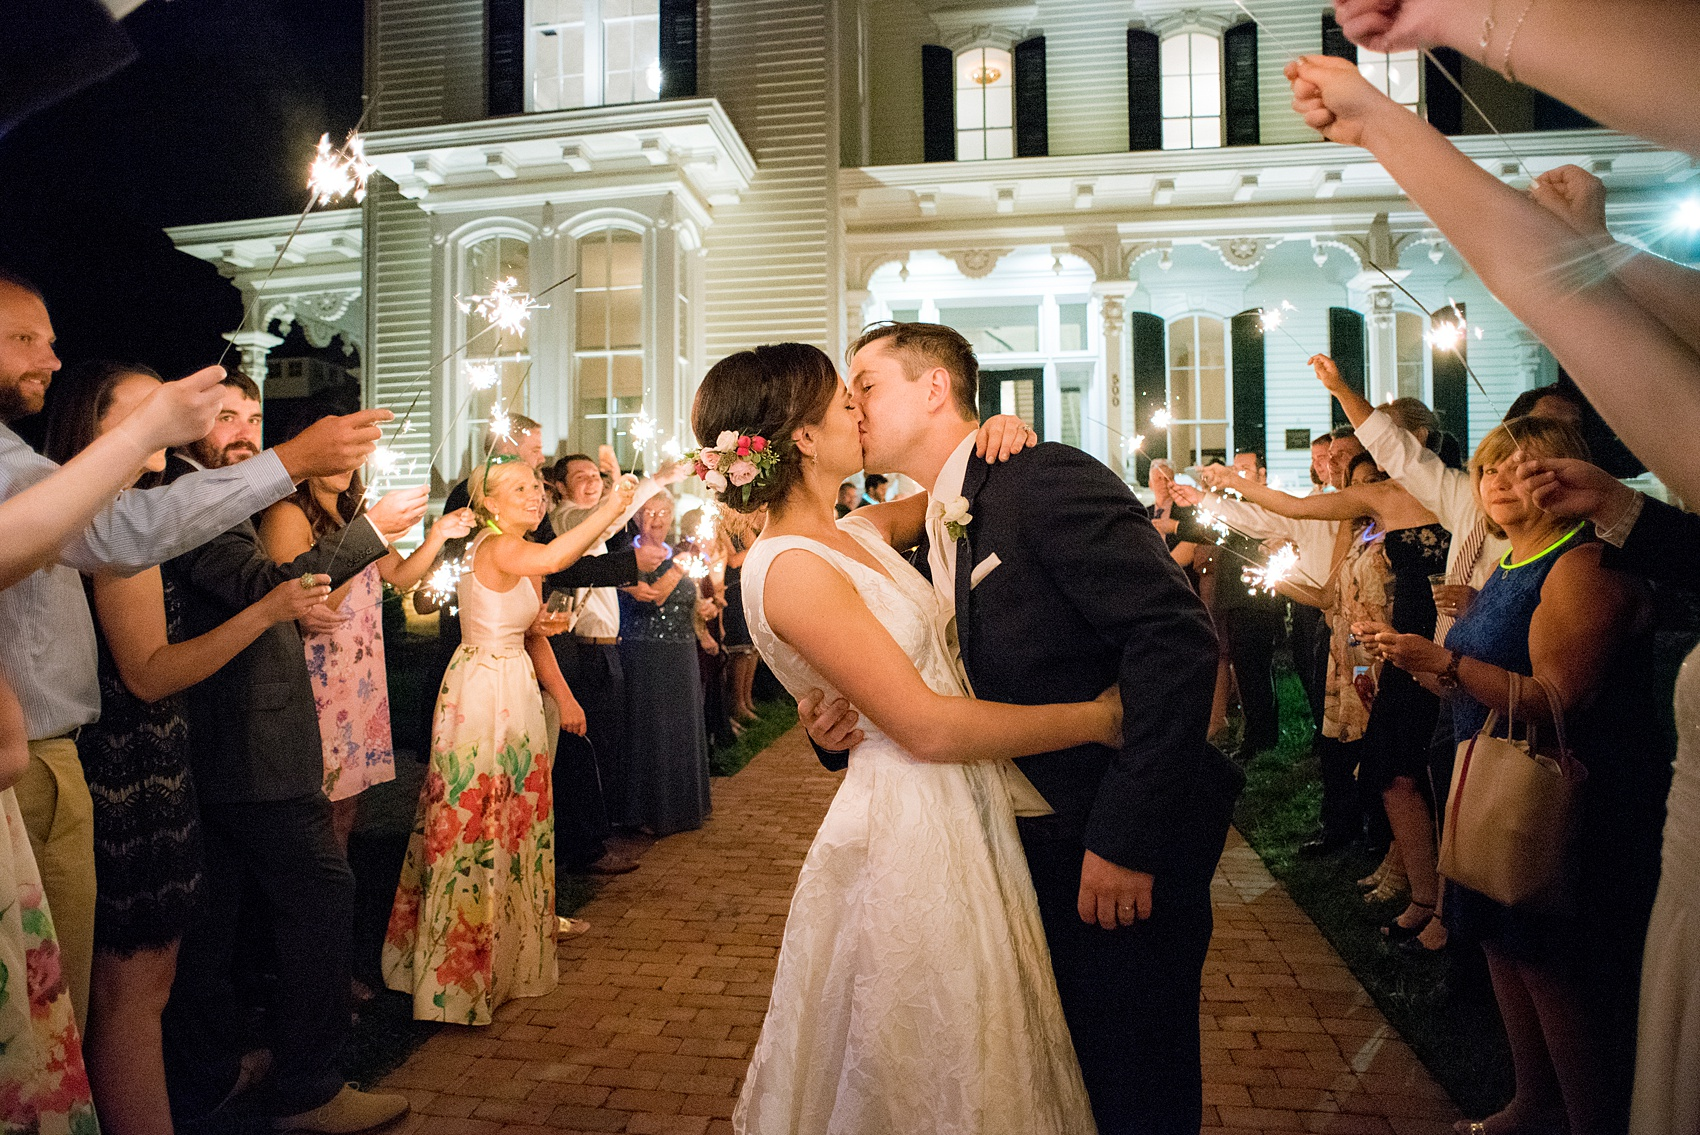 Mikkel Paige Photography pictures from a wedding at Merrimon-Wynne House in Raleigh, NC. Photo of the bride and groom's sparkler exit.